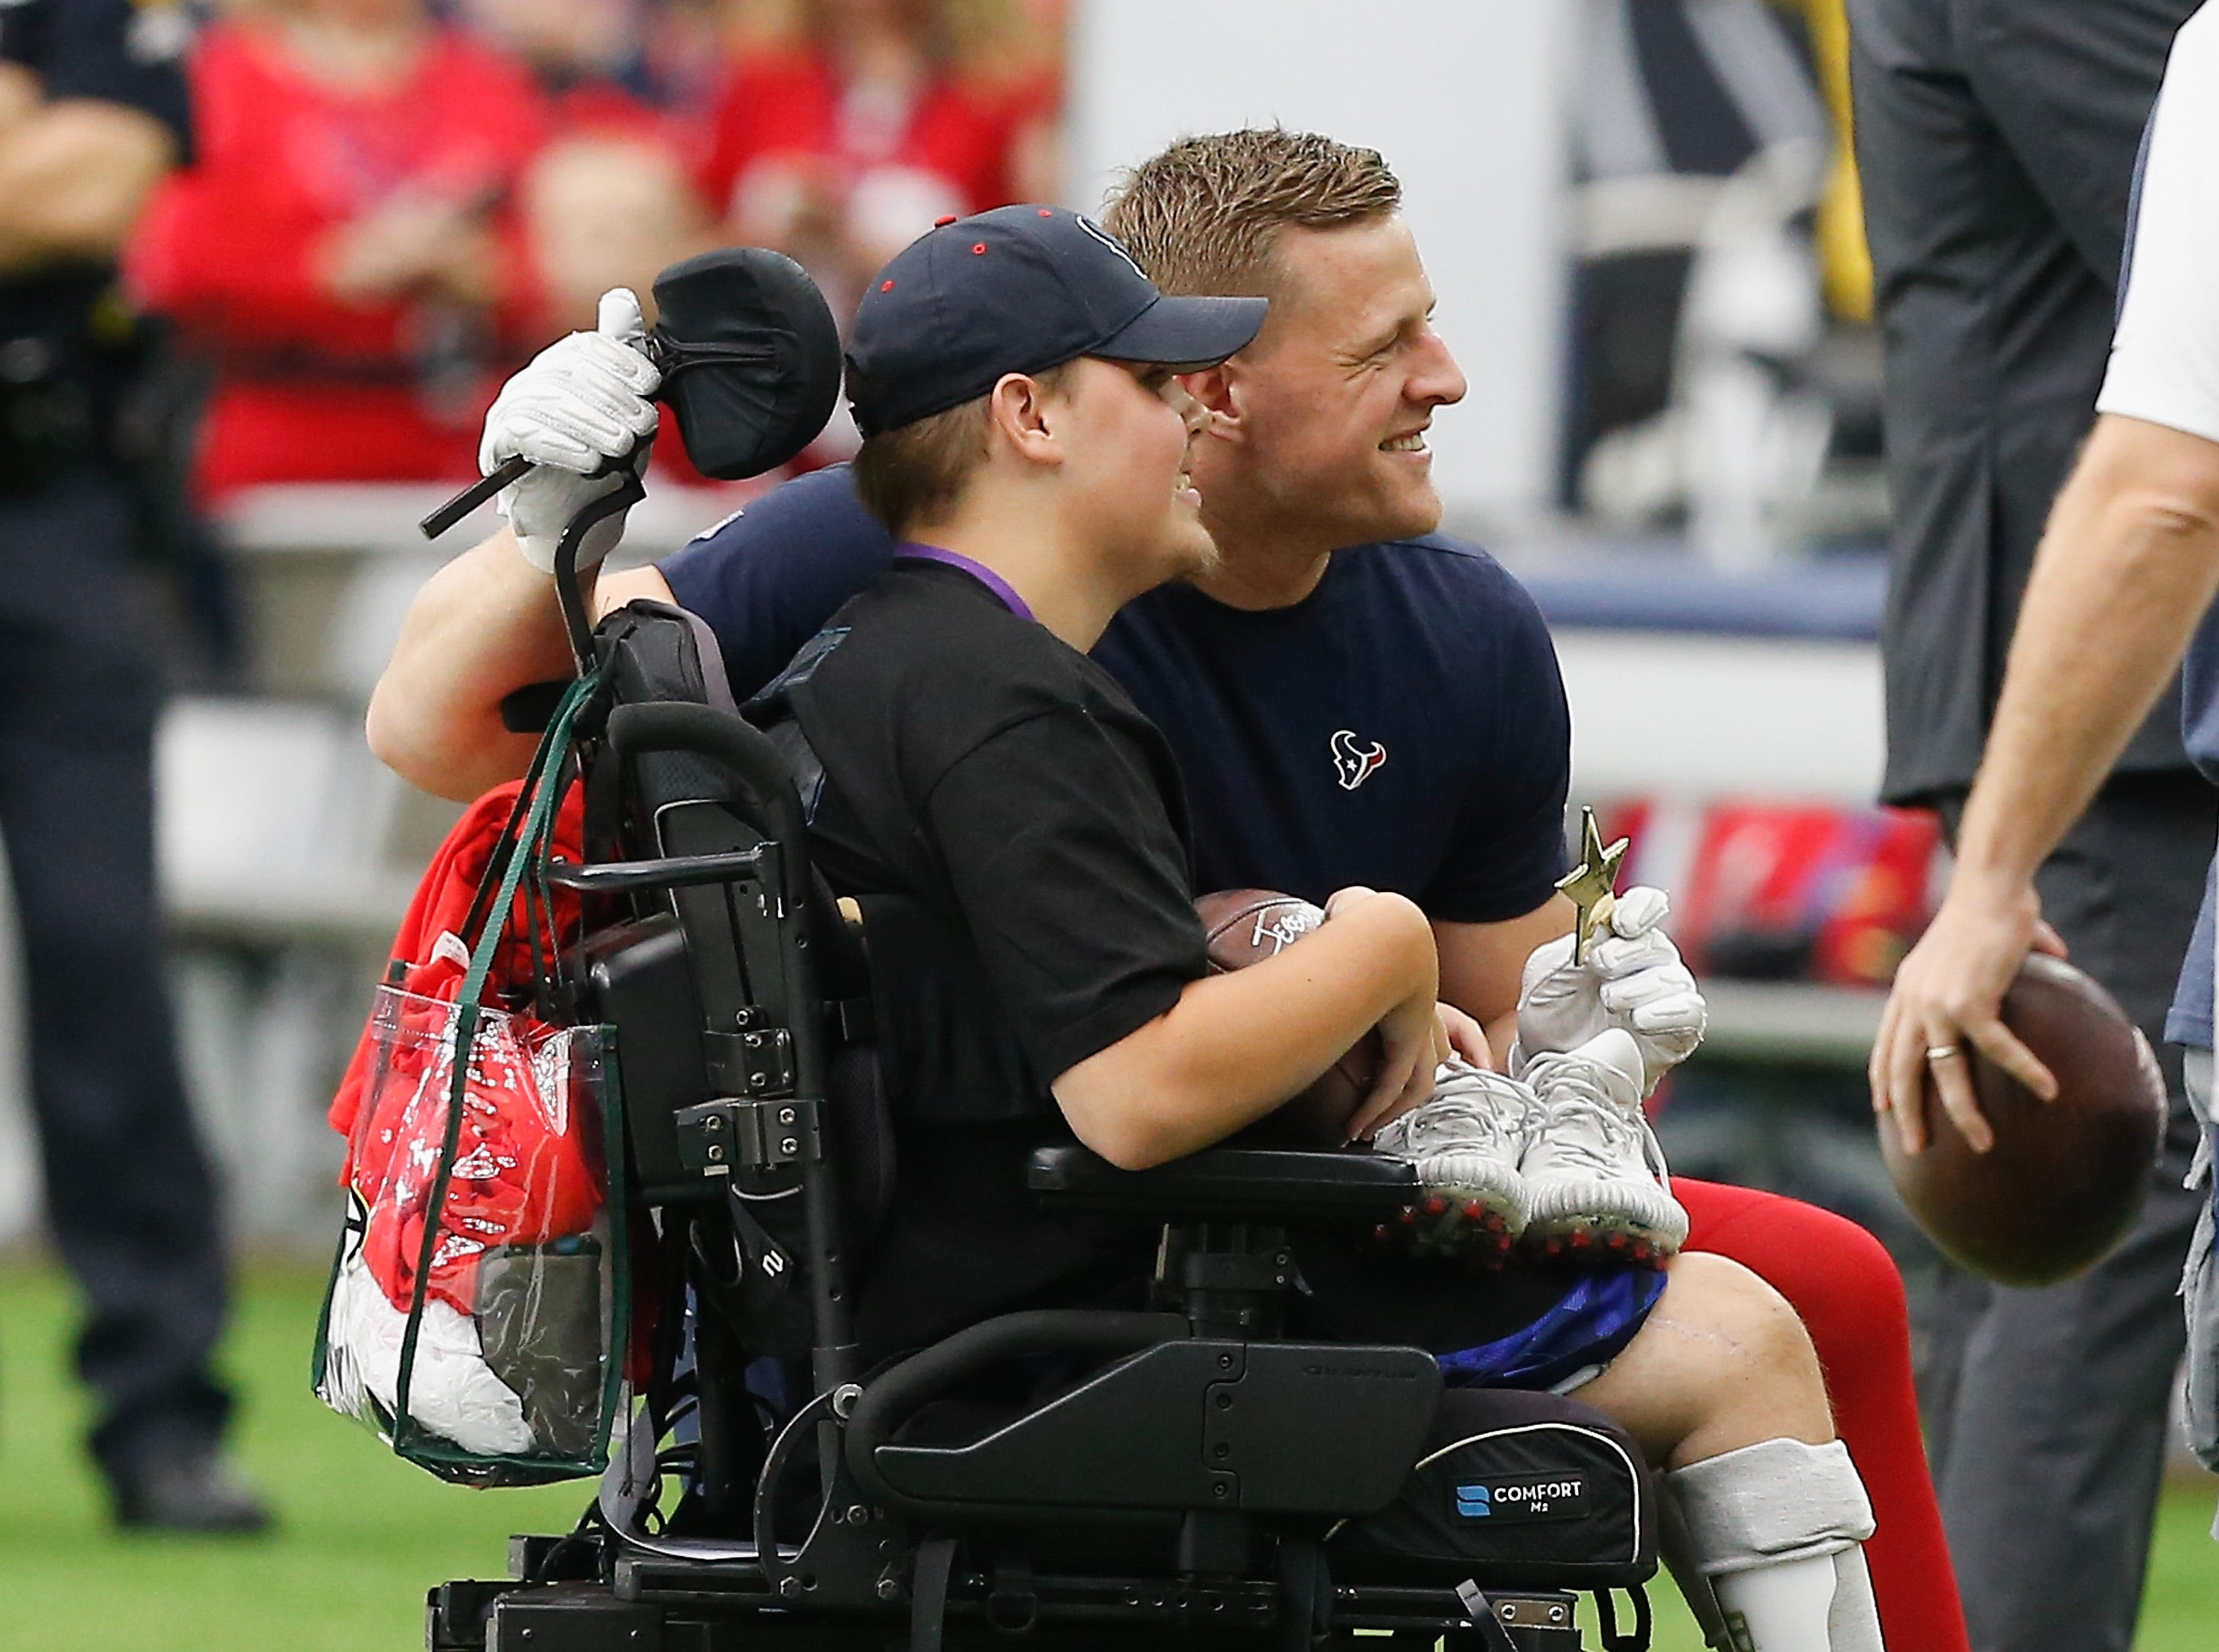 HOUSTON, TX - OCTOBER 14:  J.J. Watt #99 of the Houston Texans poses witht a  fan during pre-game warmups before playing the Buffalo Bills at NRG Stadium on October 14, 2018 in Houston, Texas.  (Photo by Bob Levey/Getty Images)